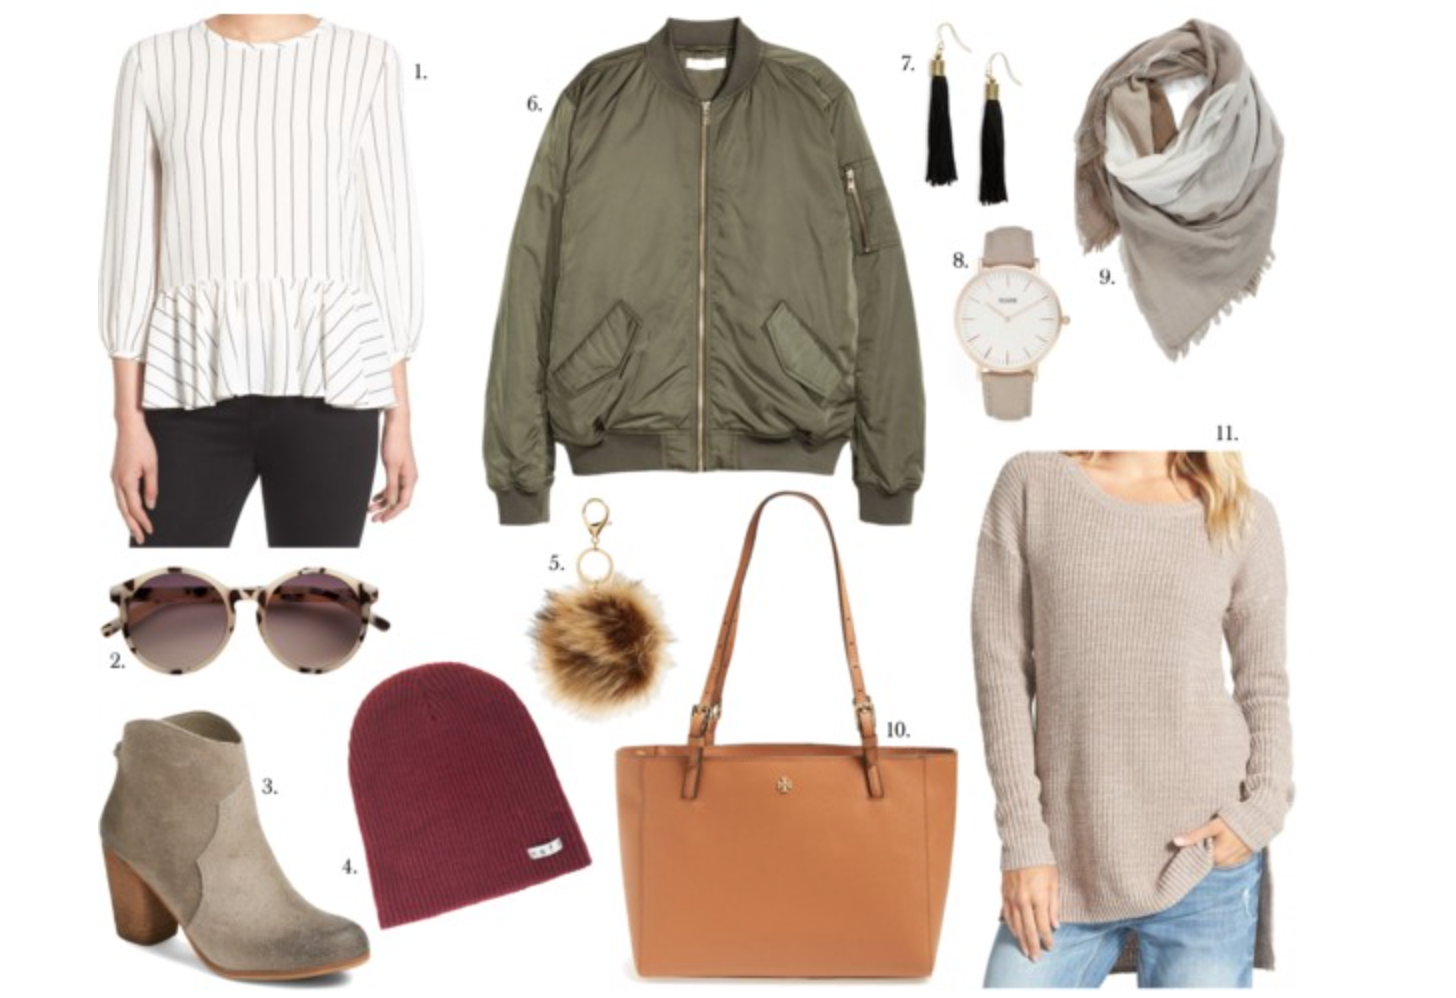 Must-have Fall clothing items - My Styled Life